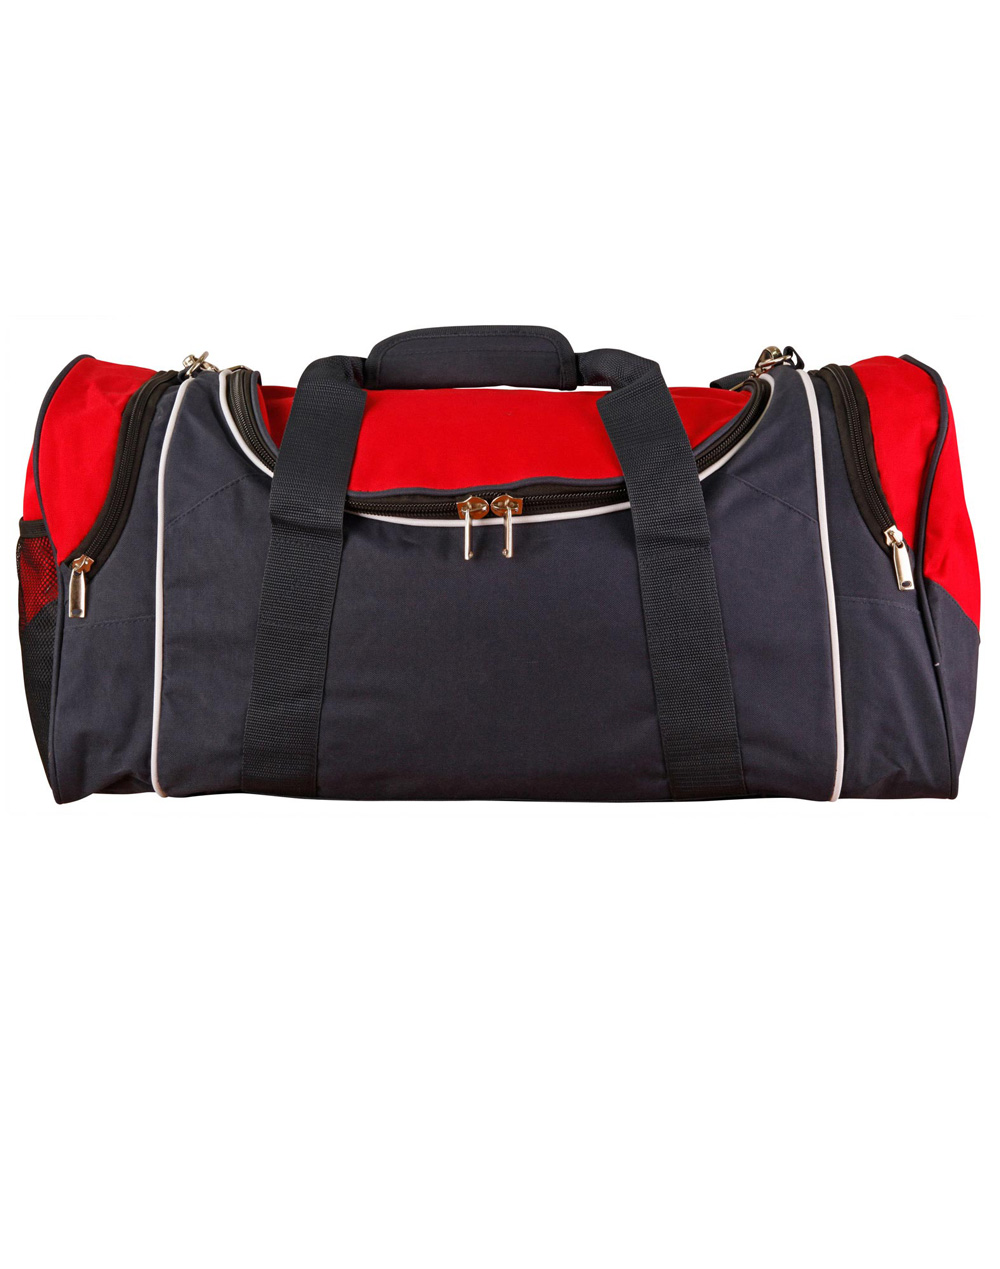 B2020 WINNER Sports/ Travel Bag